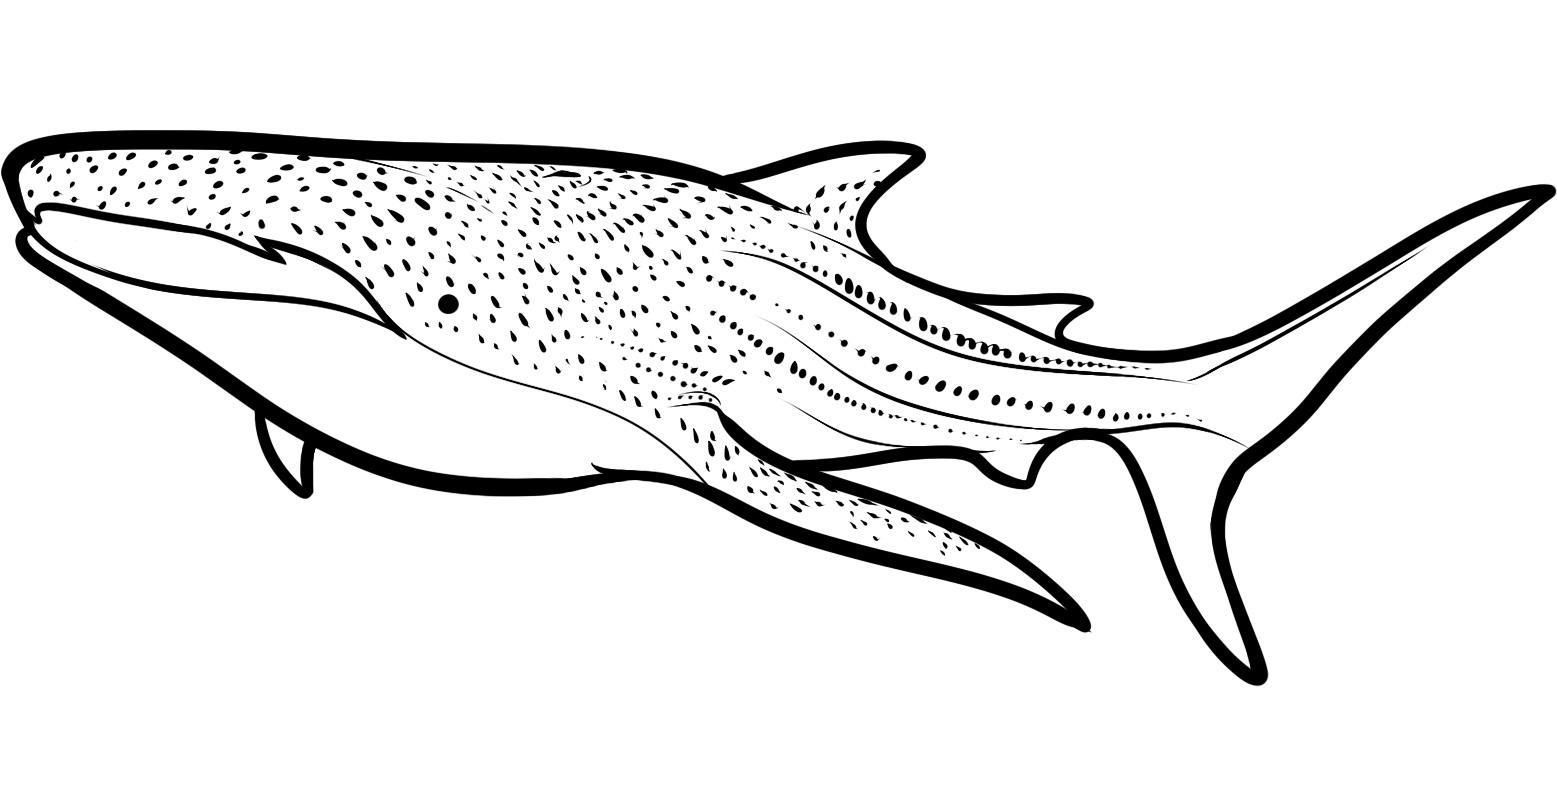 Free Printable Shark Coloring Pages Http Www Duoxheero Com Free Printable Shark Coloring Pages Html Coloringpages Shark Coloring Pages Have Nautical Them